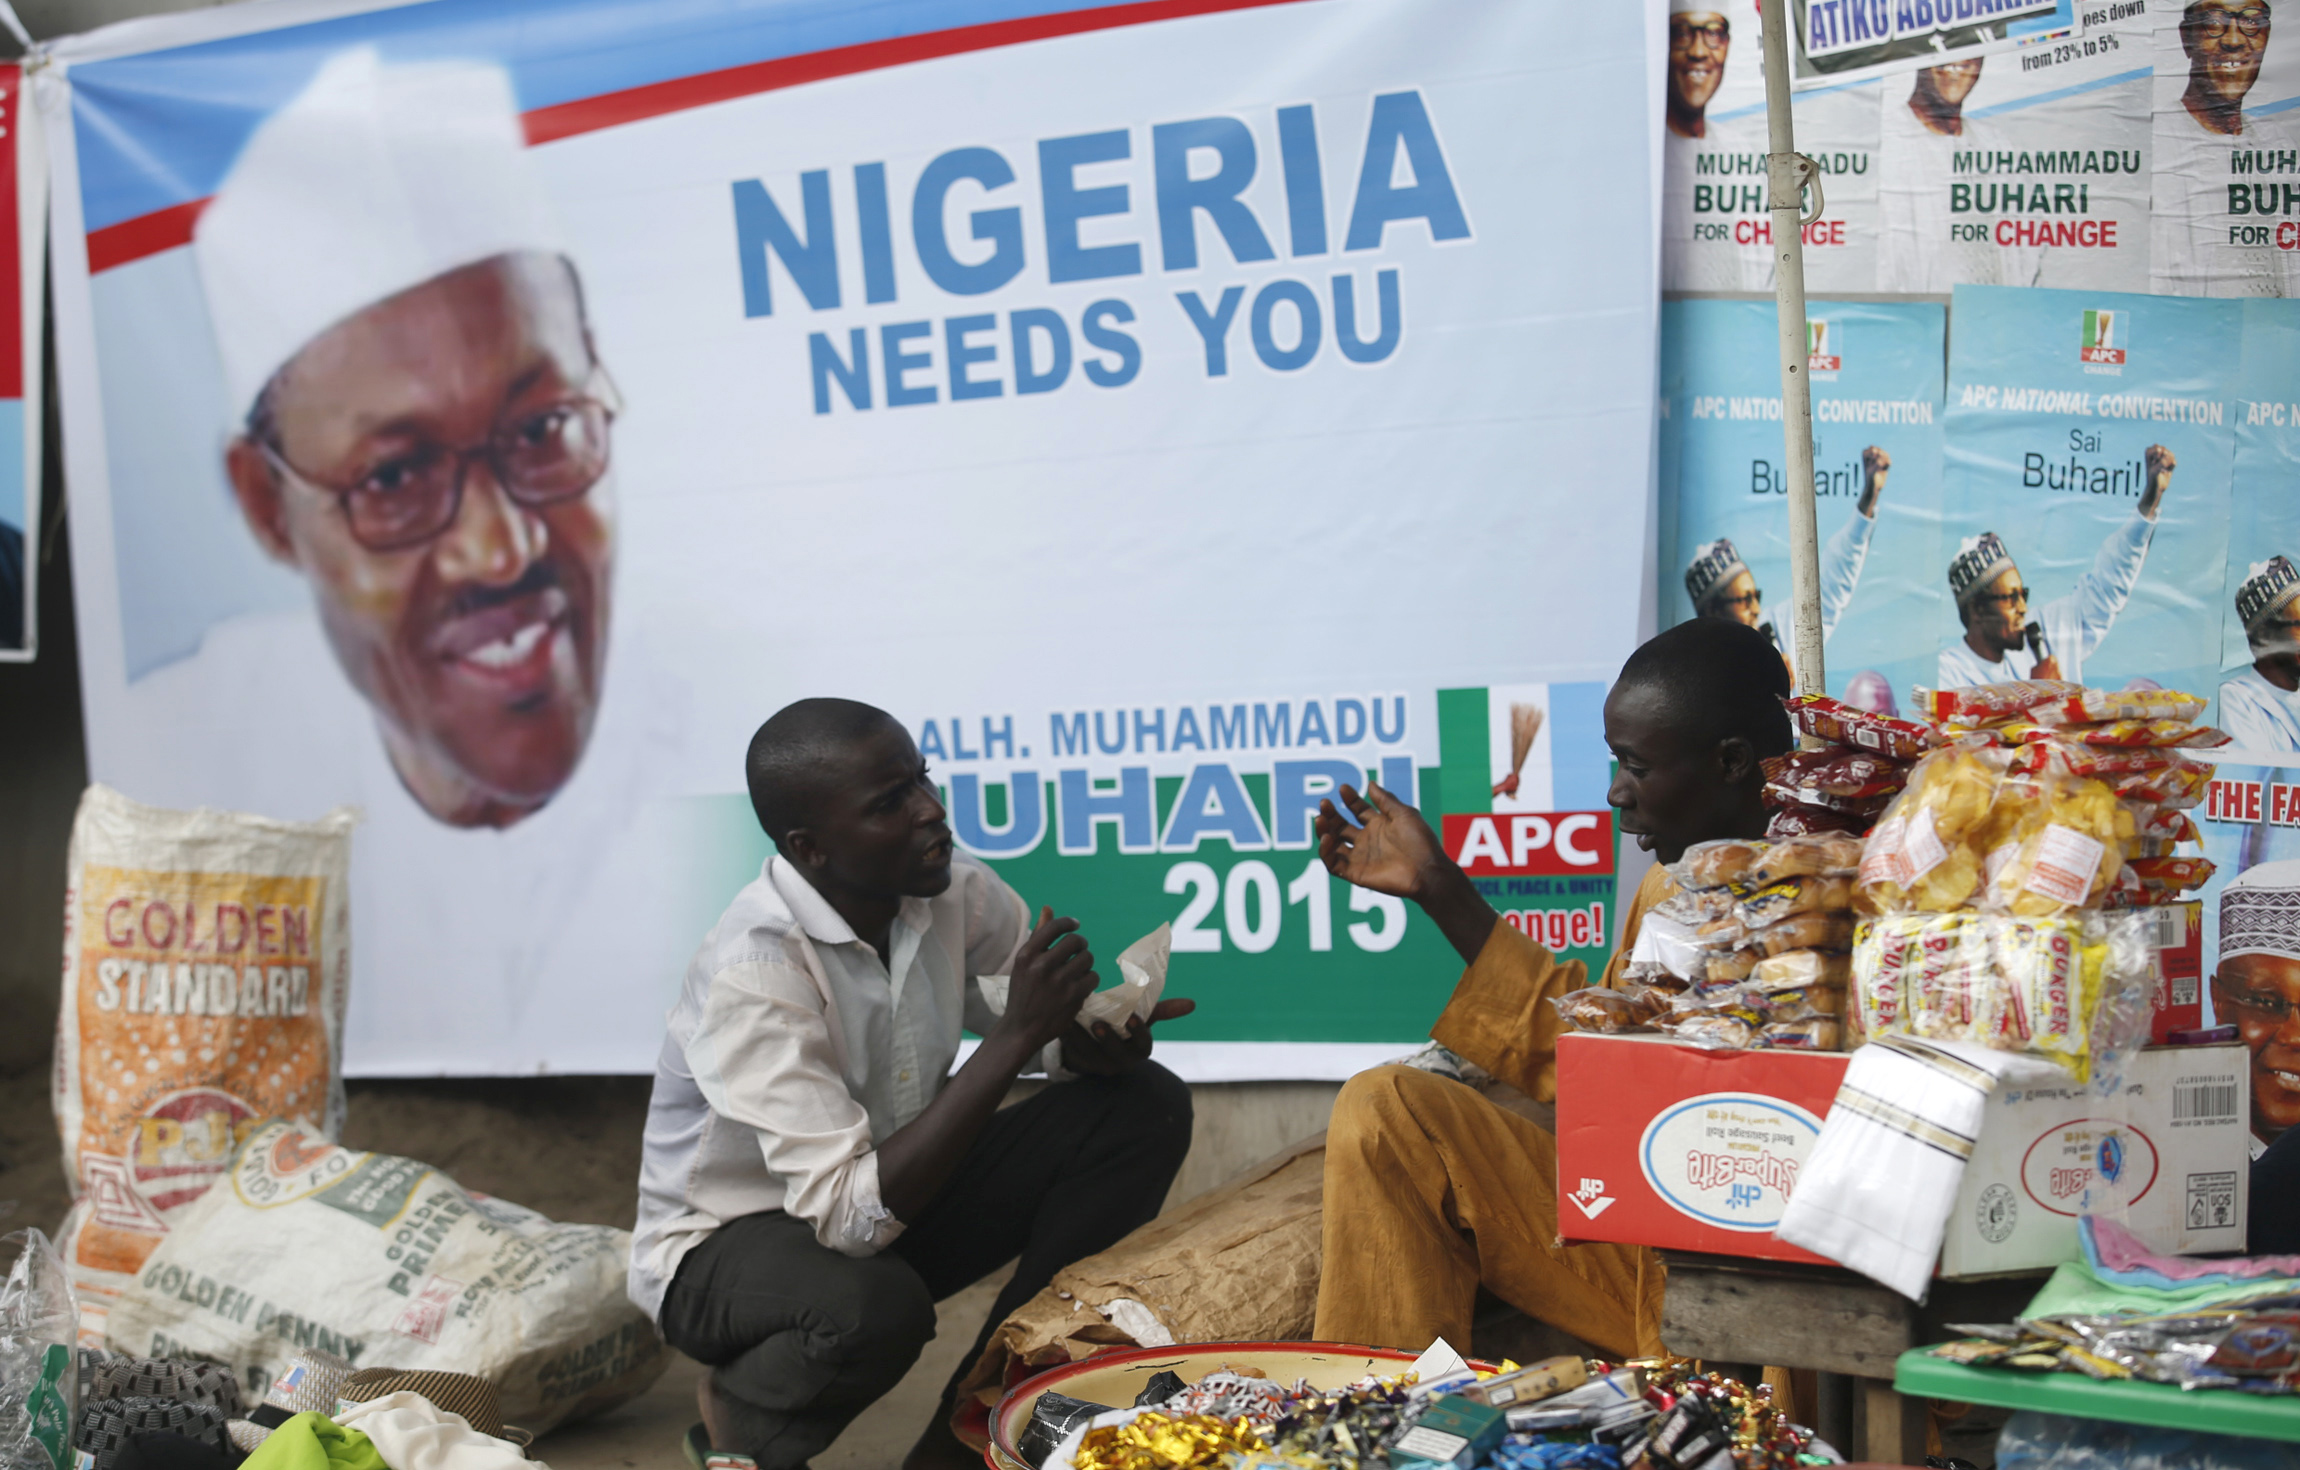 Vendors sell their wares near an election poster of former Nigerian military ruler Muhammadu Buhari before the start of All Progressives Congress (APC) party convention in Lagos December 10, 2014. Nigeria's main opposition coalition began a convention on Wednesday to select a candidate to take on President Goodluck Jonathan in February, in what will be the most closely fought election since the end of military rule in 1999. REUTERS/Akintunde Akinleye  (NIGERIA - Tags: POLITICS ELECTIONS) - RTR4HJ2G